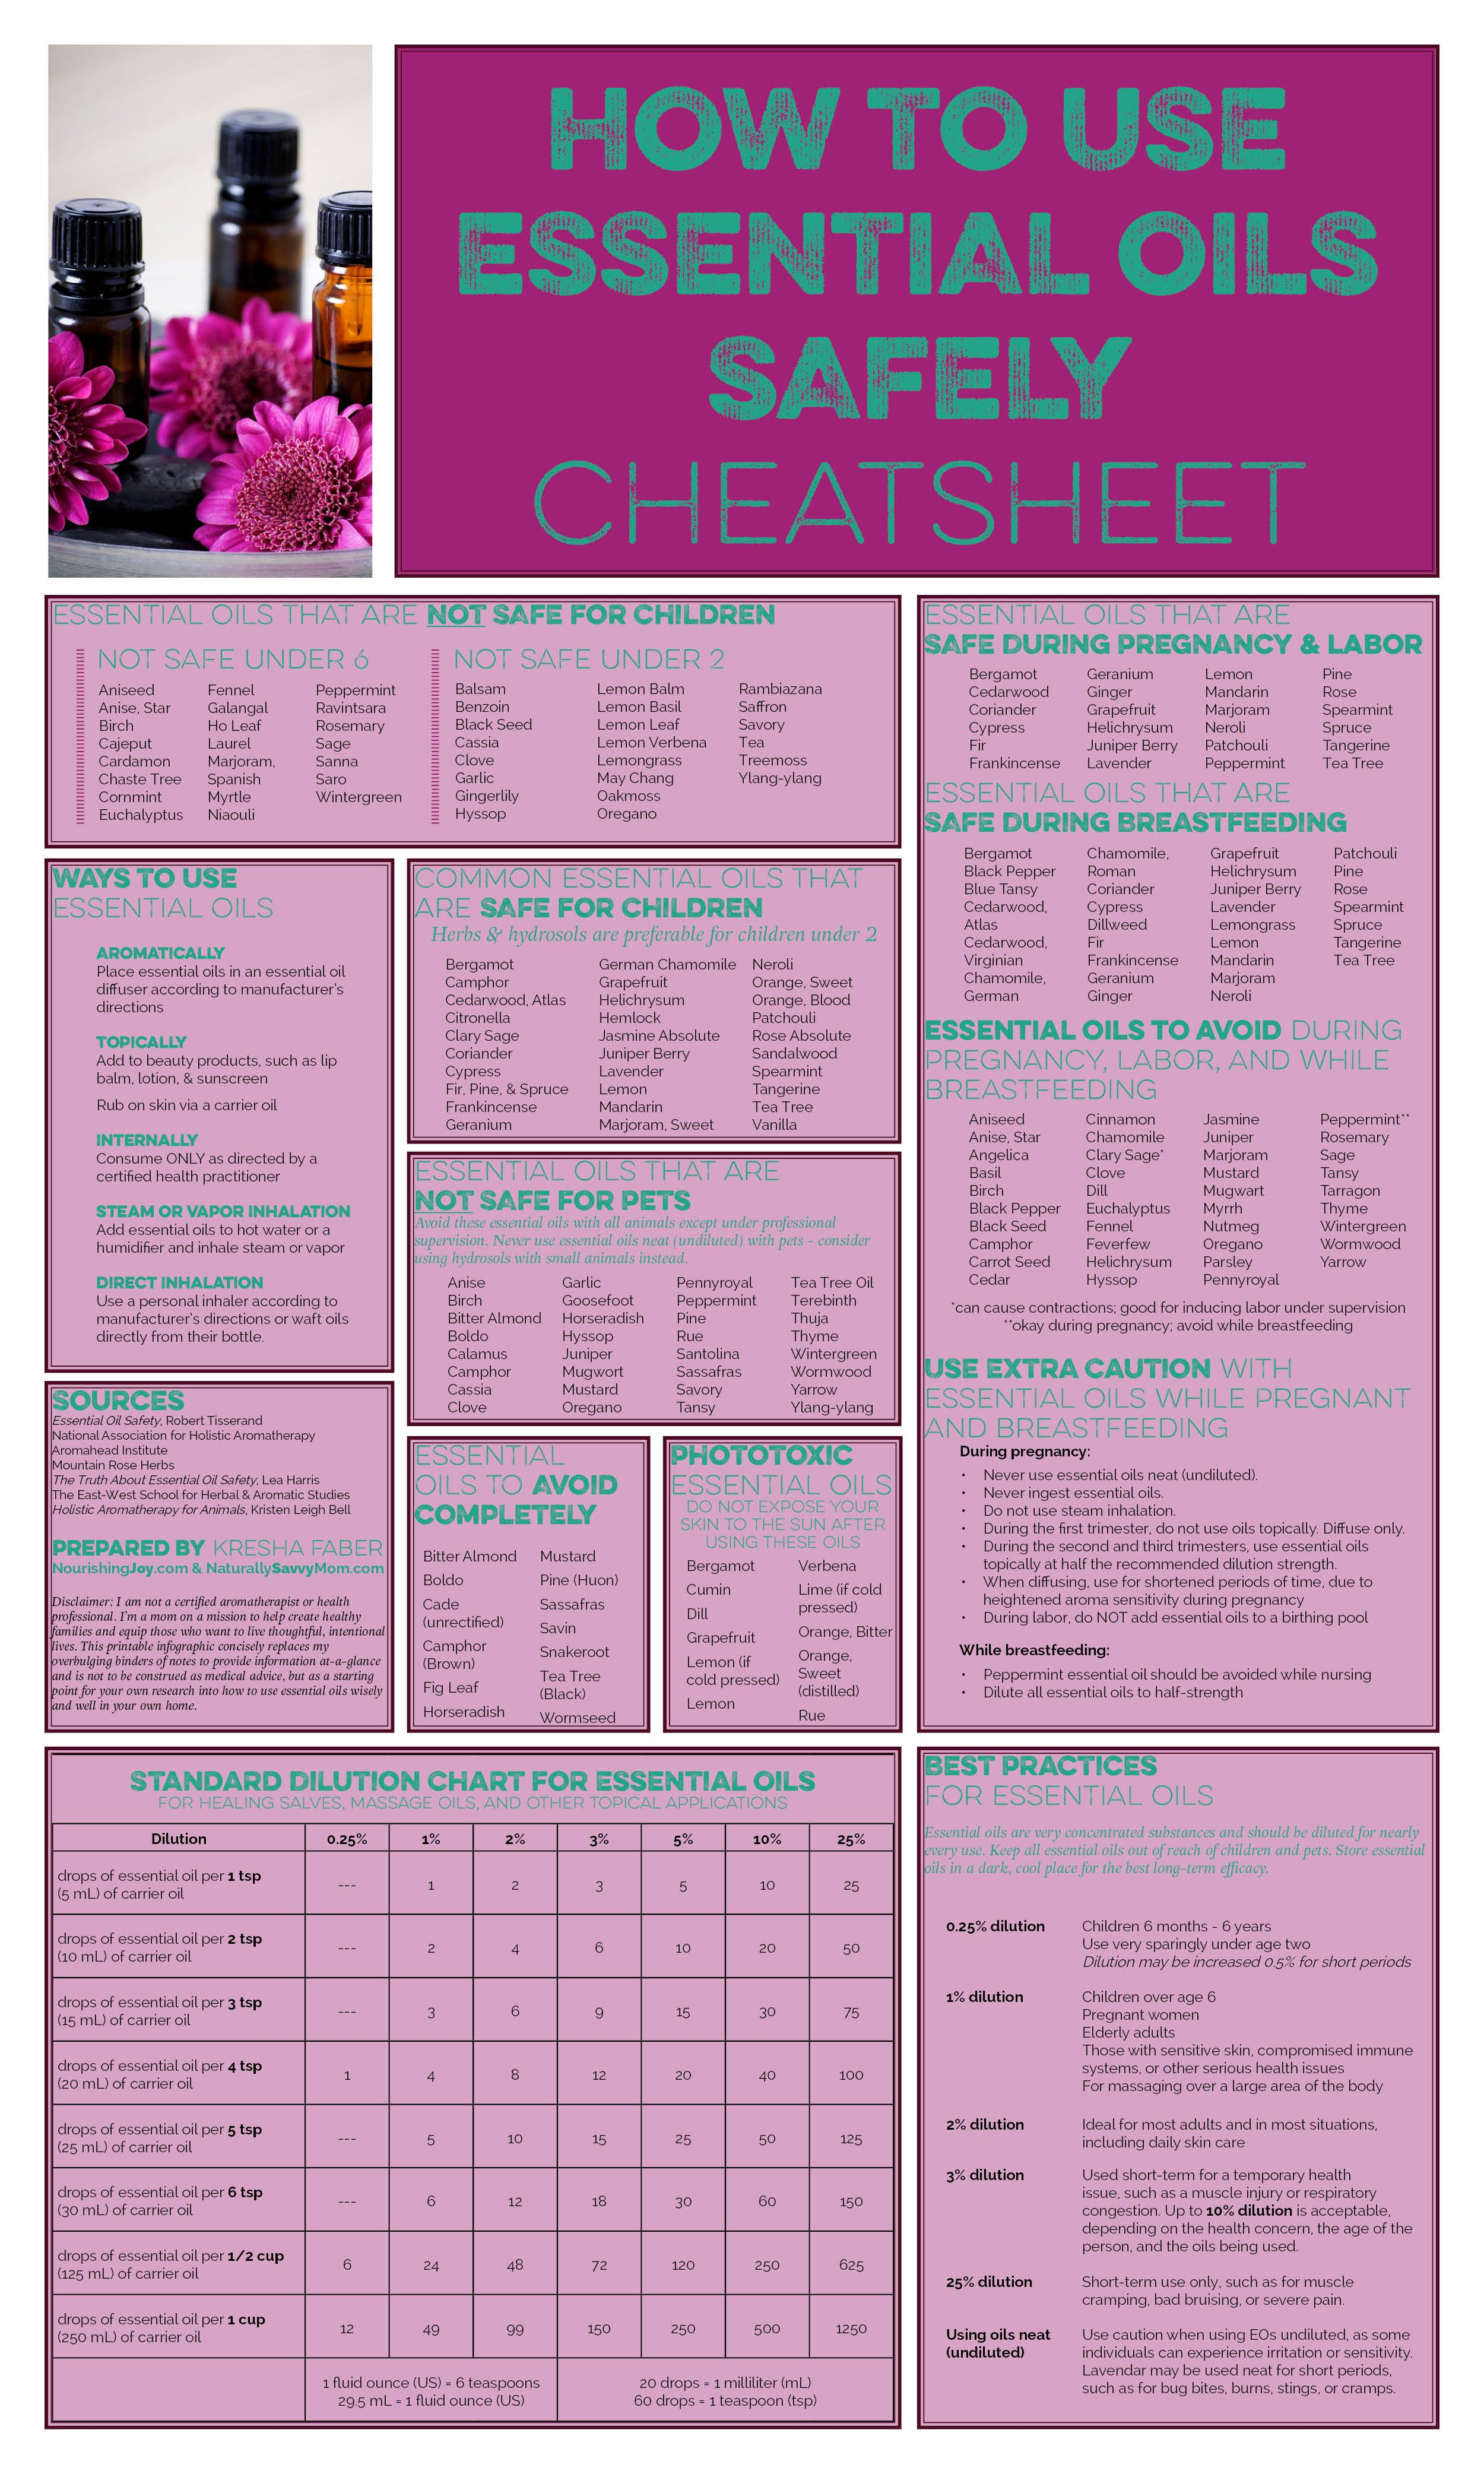 Printable cheat sheet on using essential oils safely also the guide to how use diy great rh pinterest